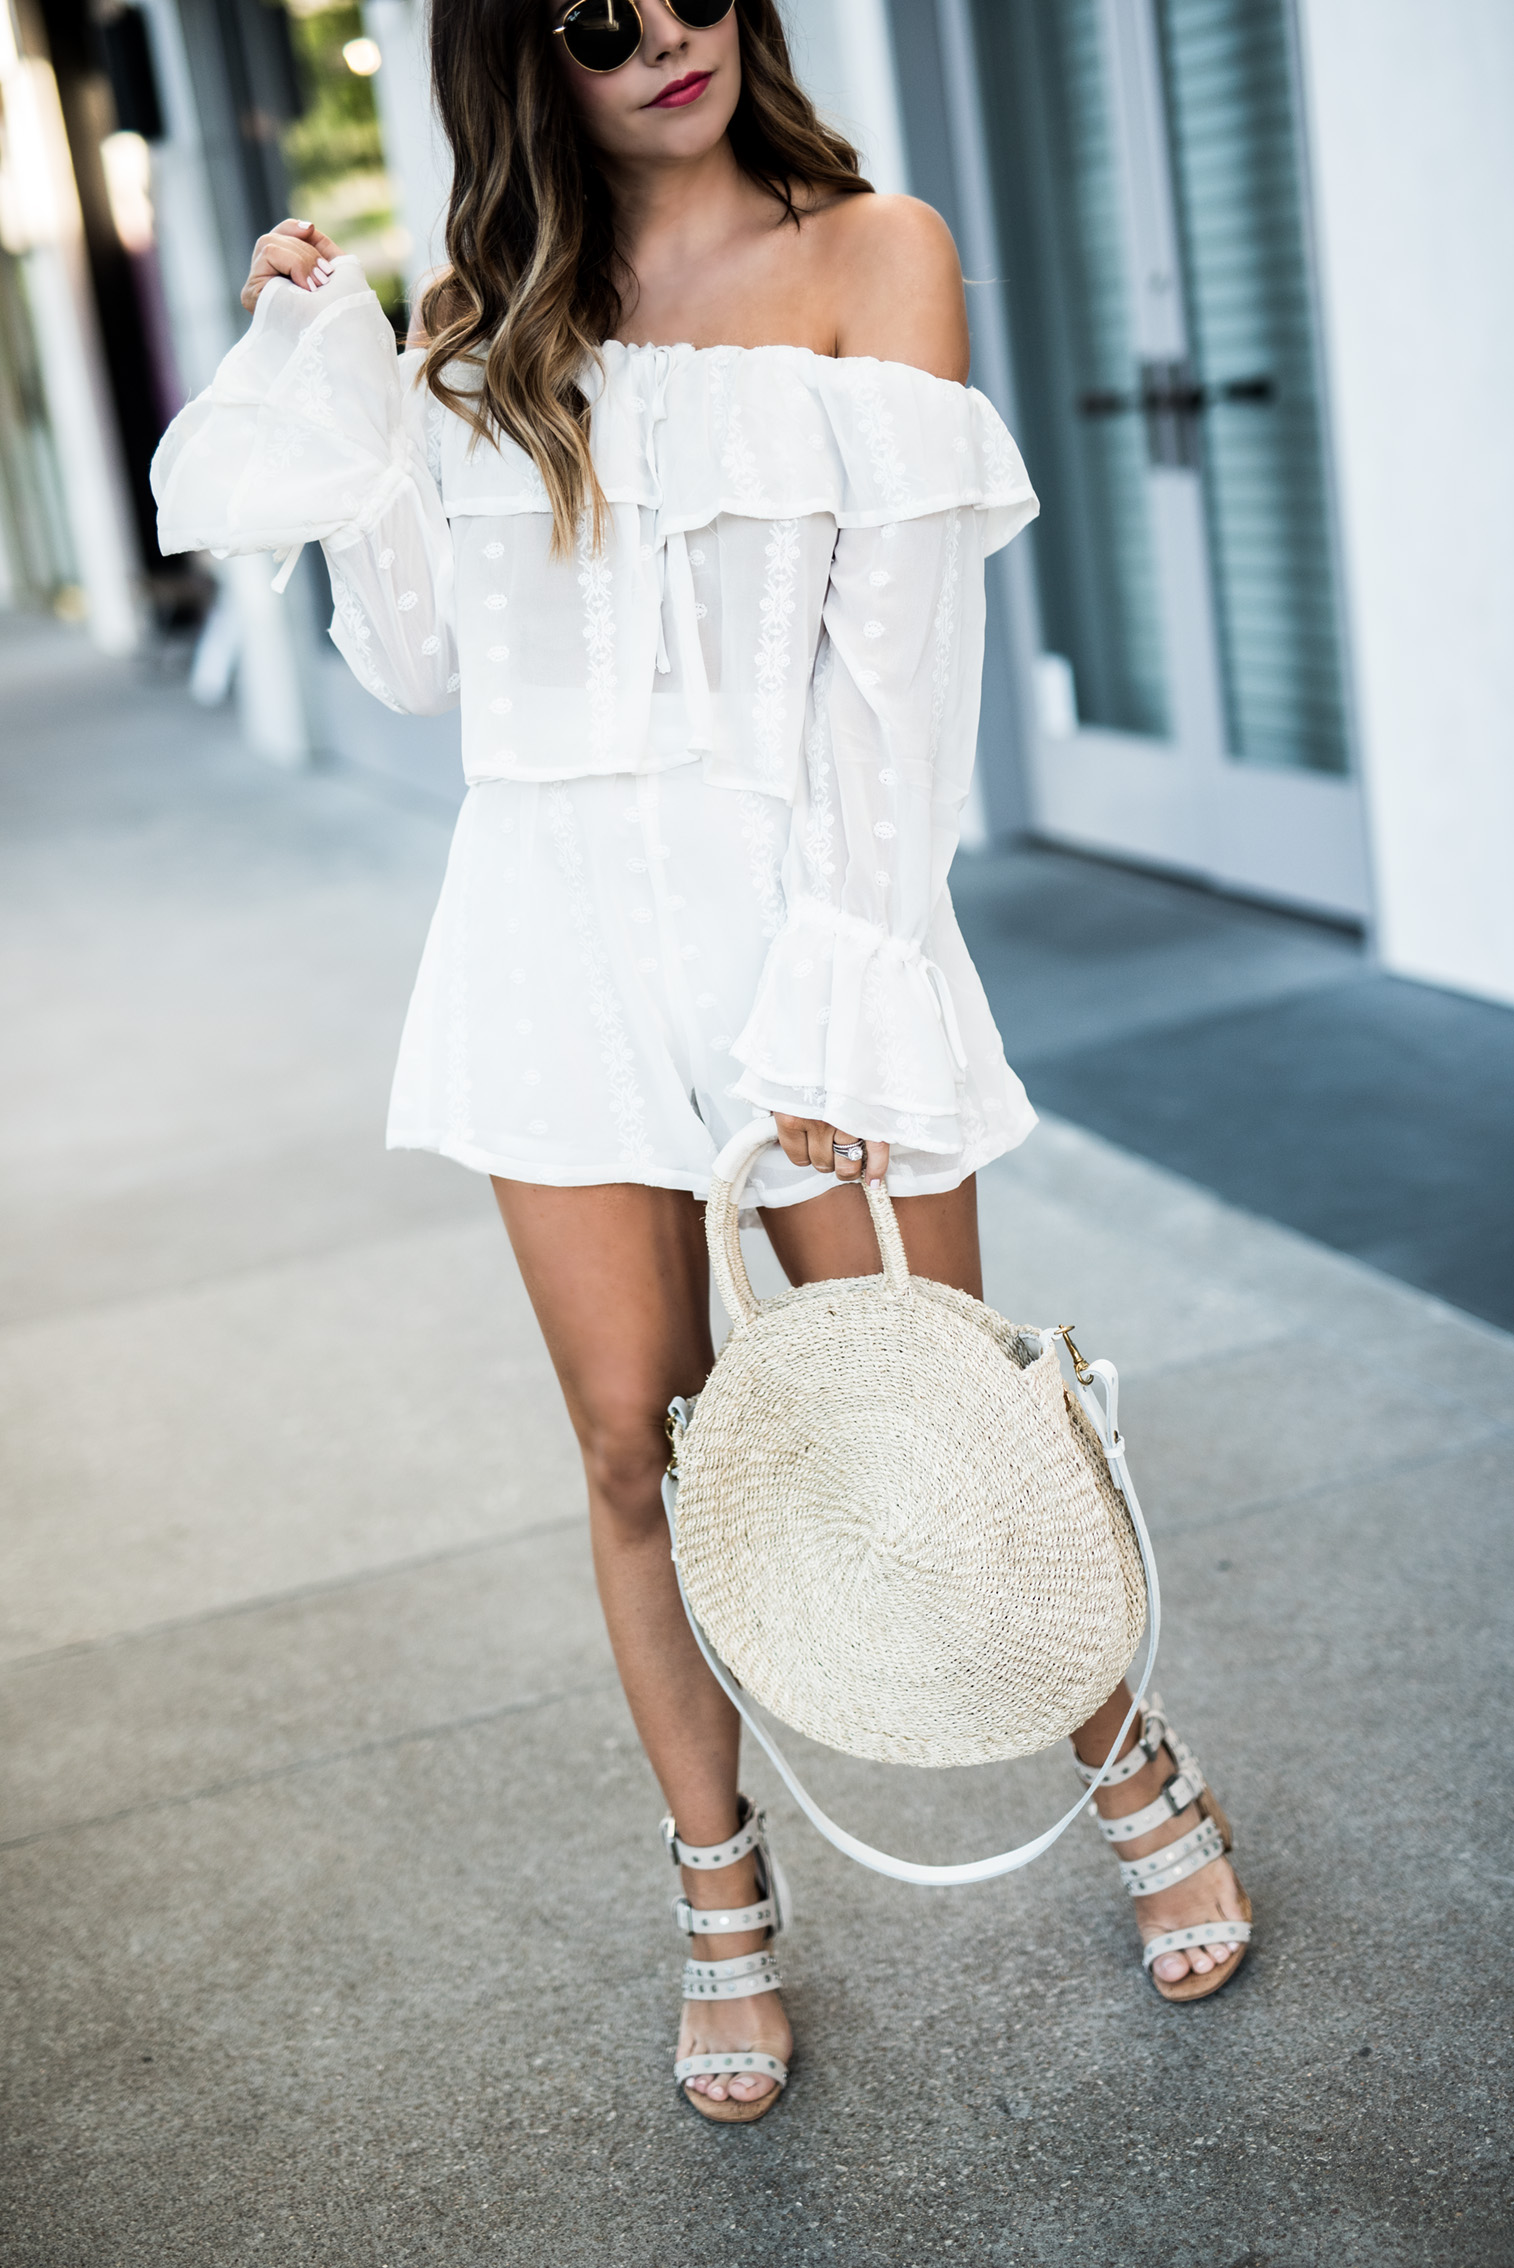 Tiffany Jais Houston fashion and lifestyle blogger | 8 matching sets for summer | clare V alice tote, ruffle off the shoulder matching set, Dolce Vita effie heels